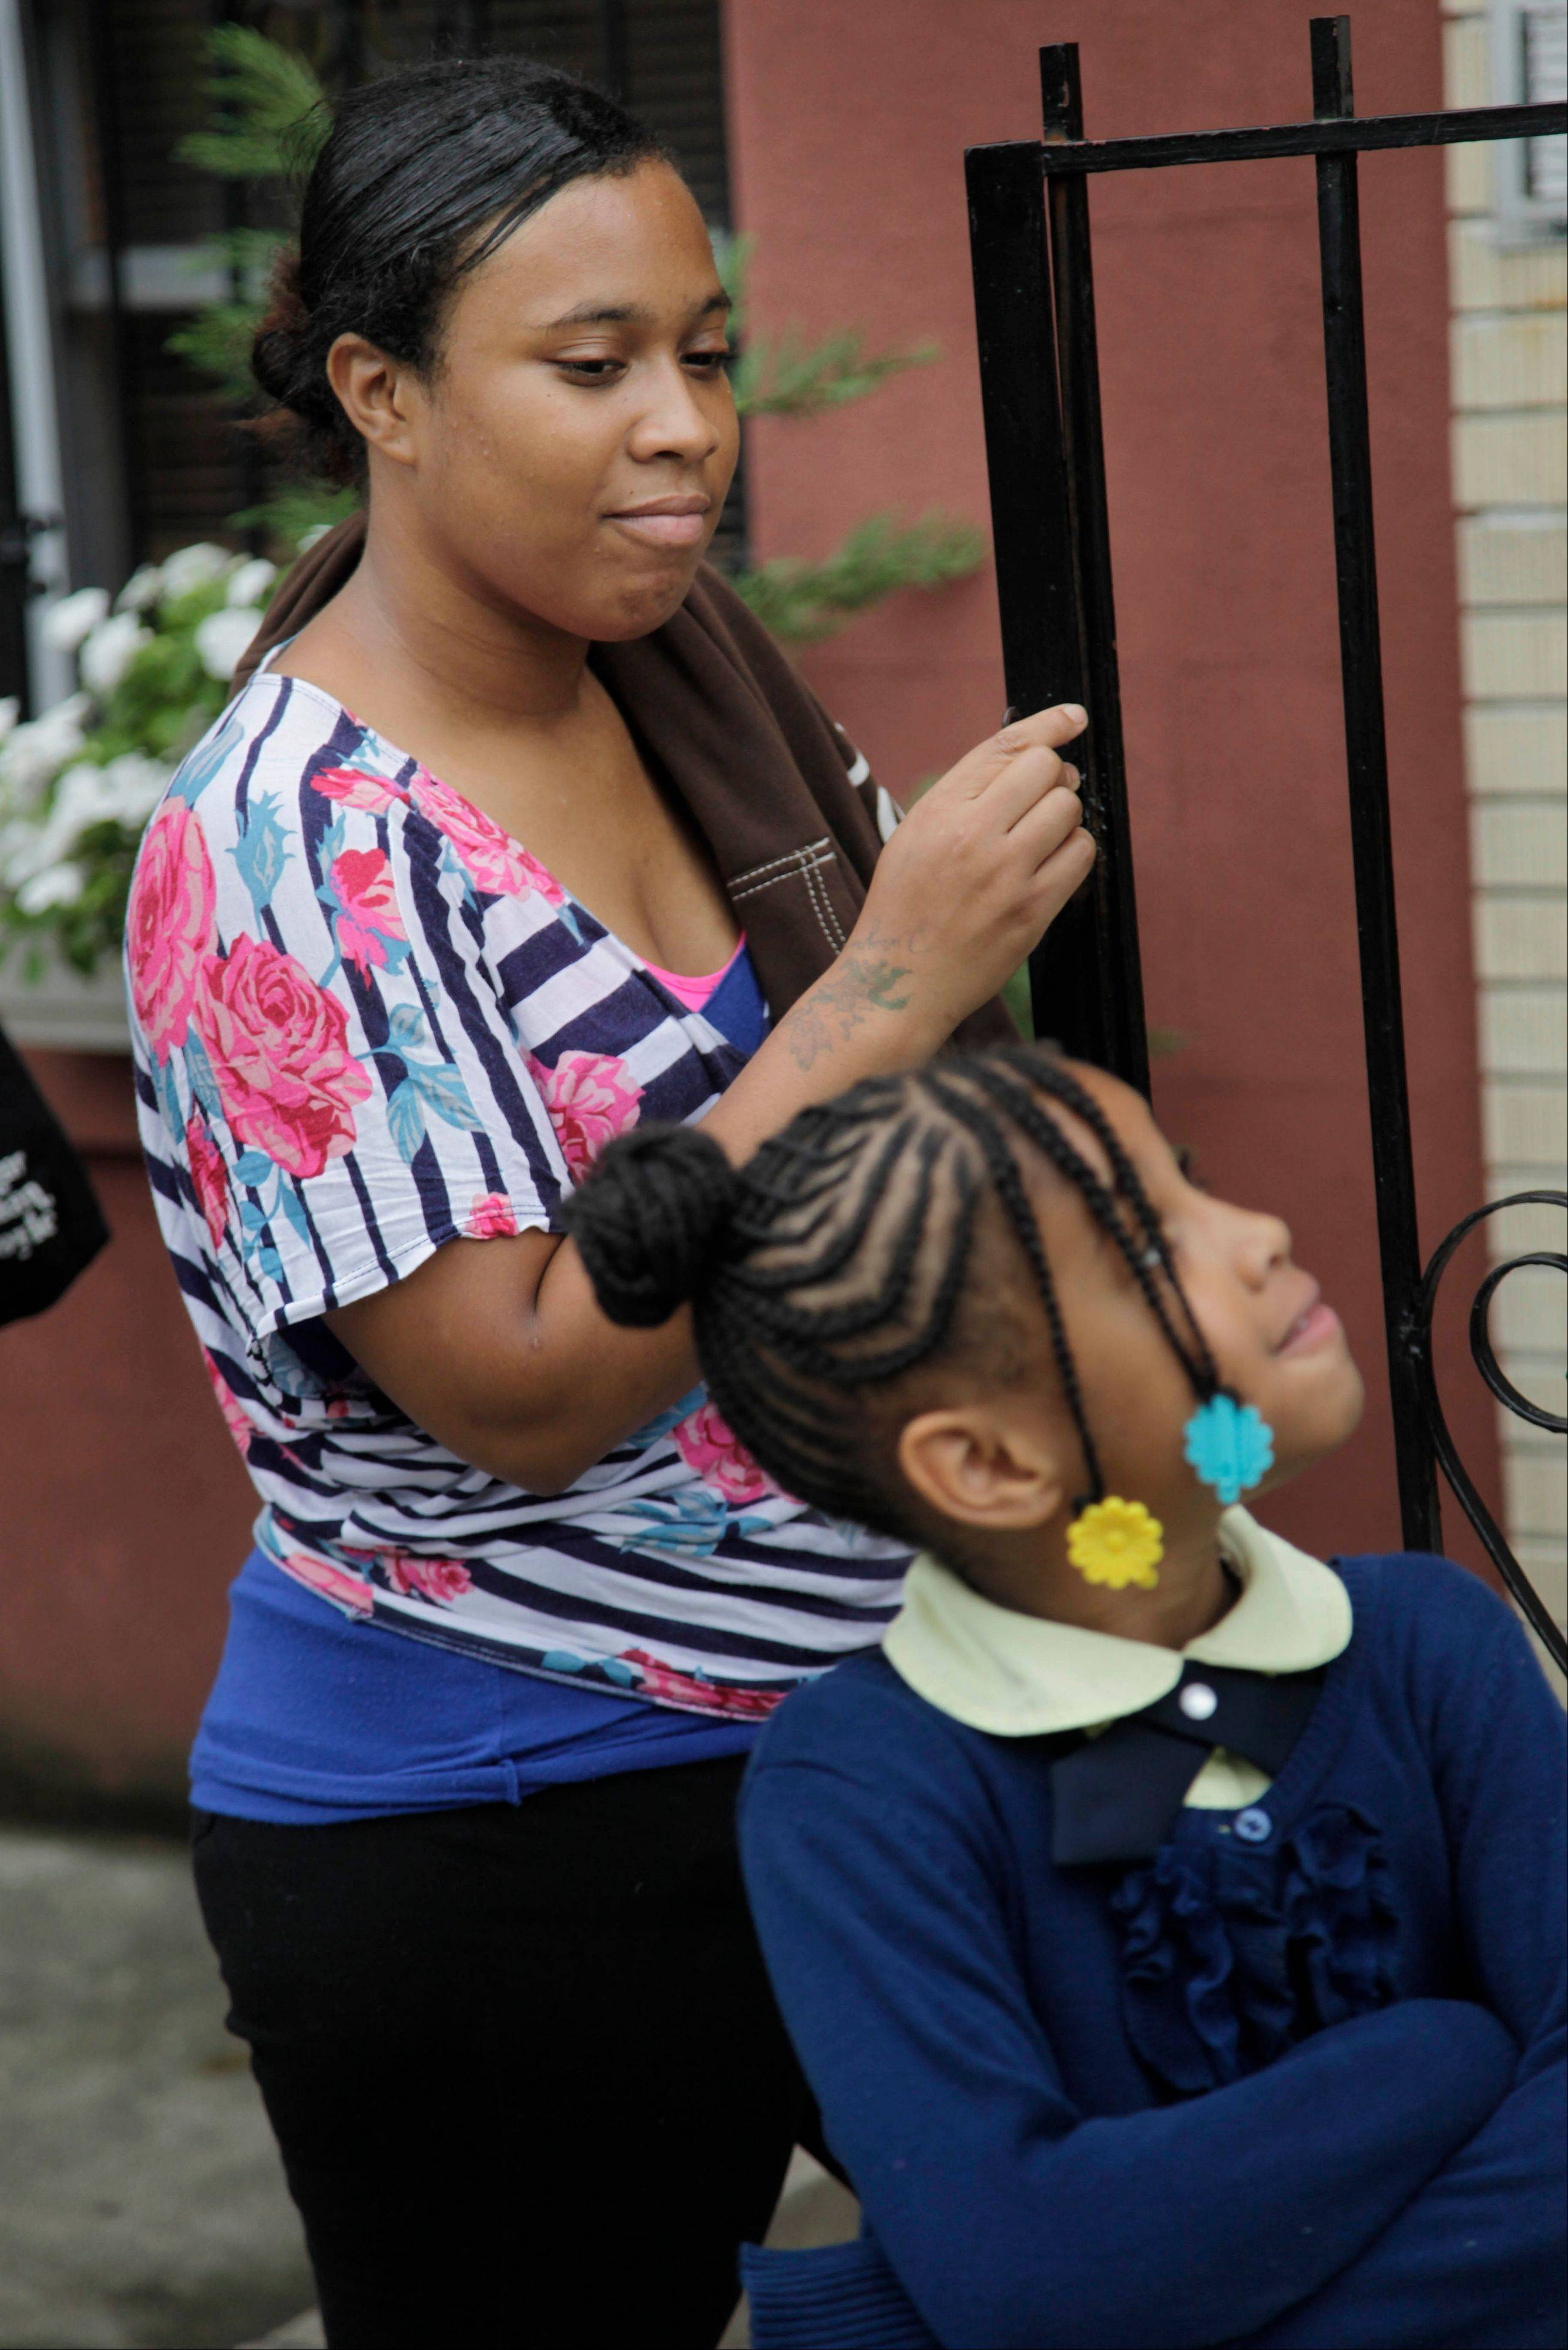 Olgita Blackwood watches her daughter, Malaysia, 7, while waiting for her son to return from school at their apartment in the Drew House in New York.